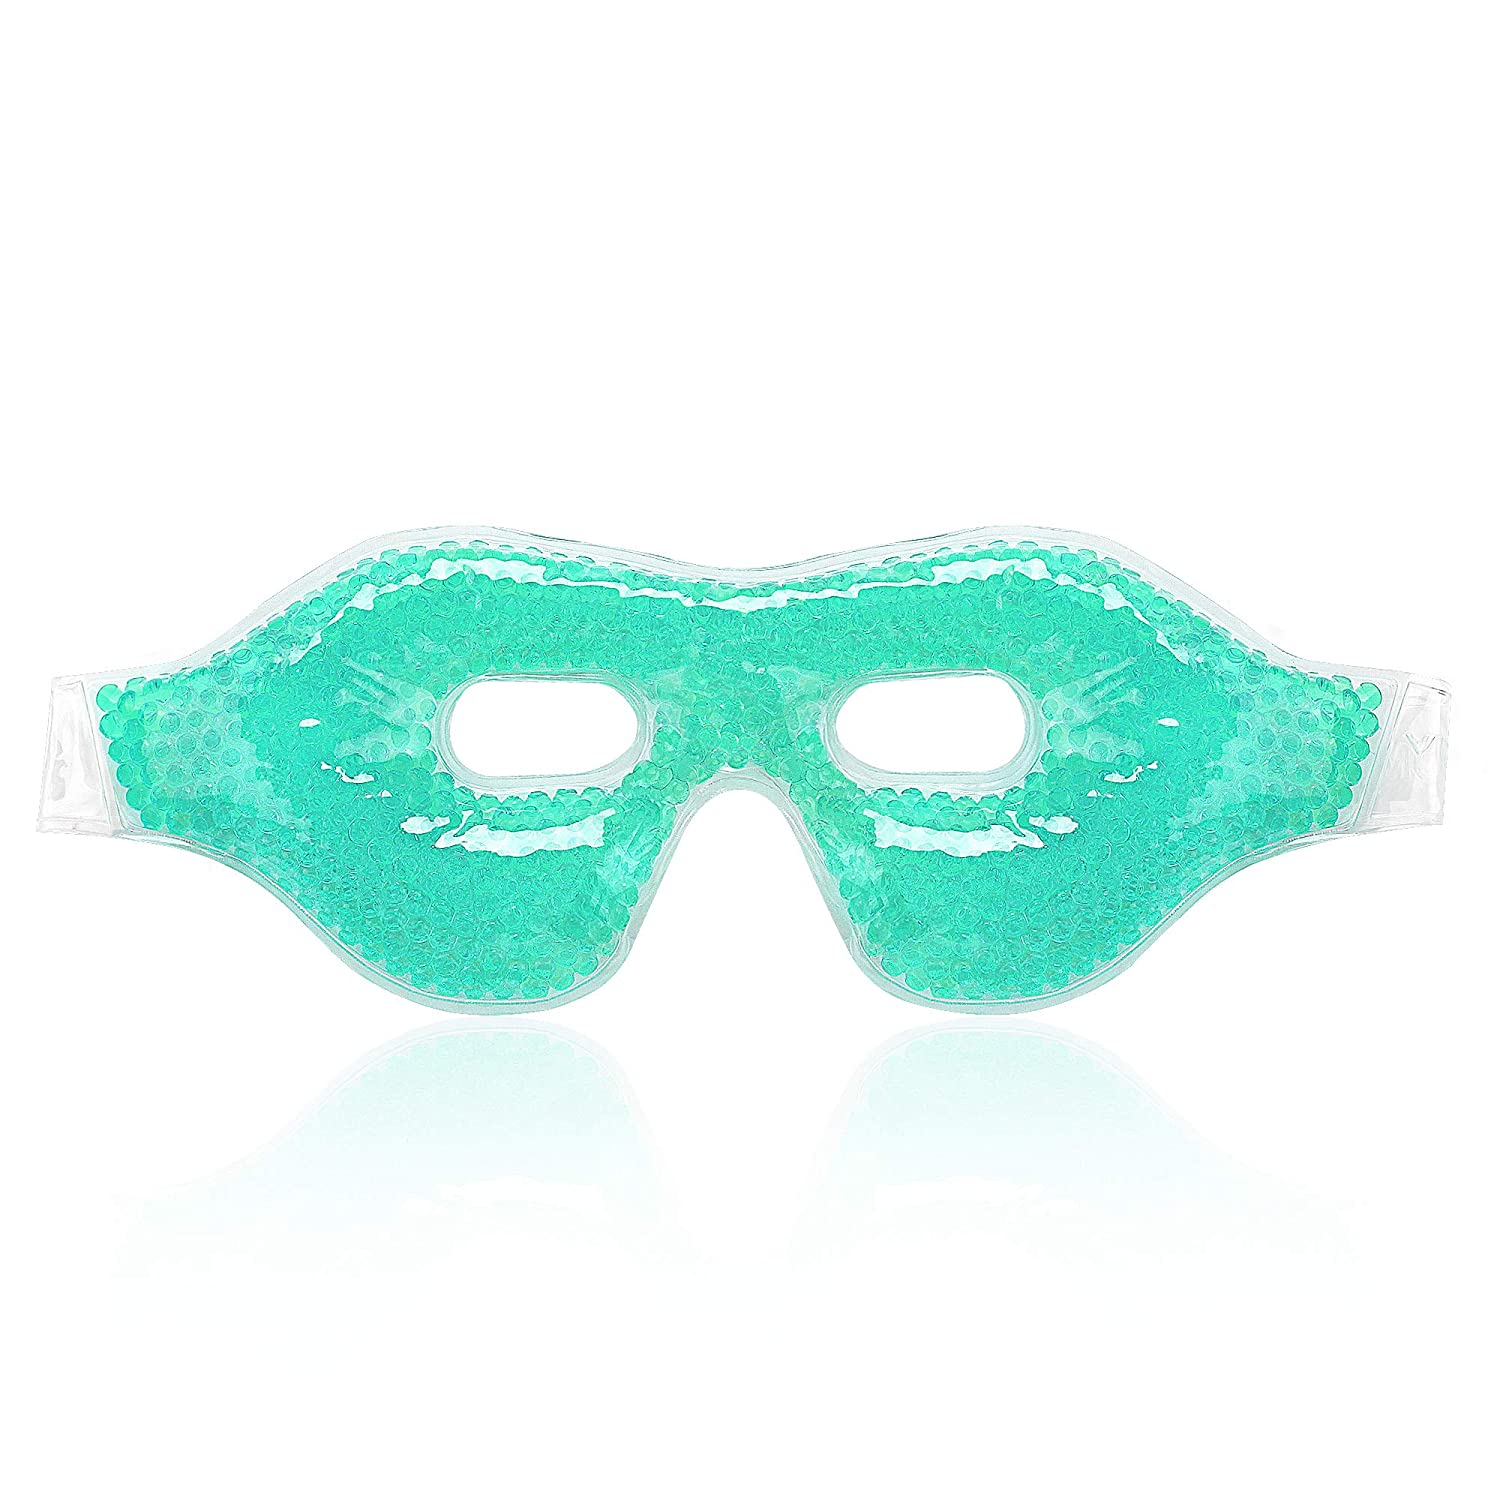 Popular Popular standard product Gel Cooling Eye Mask,Ice Cold Puffy for Compress Eyes Dry